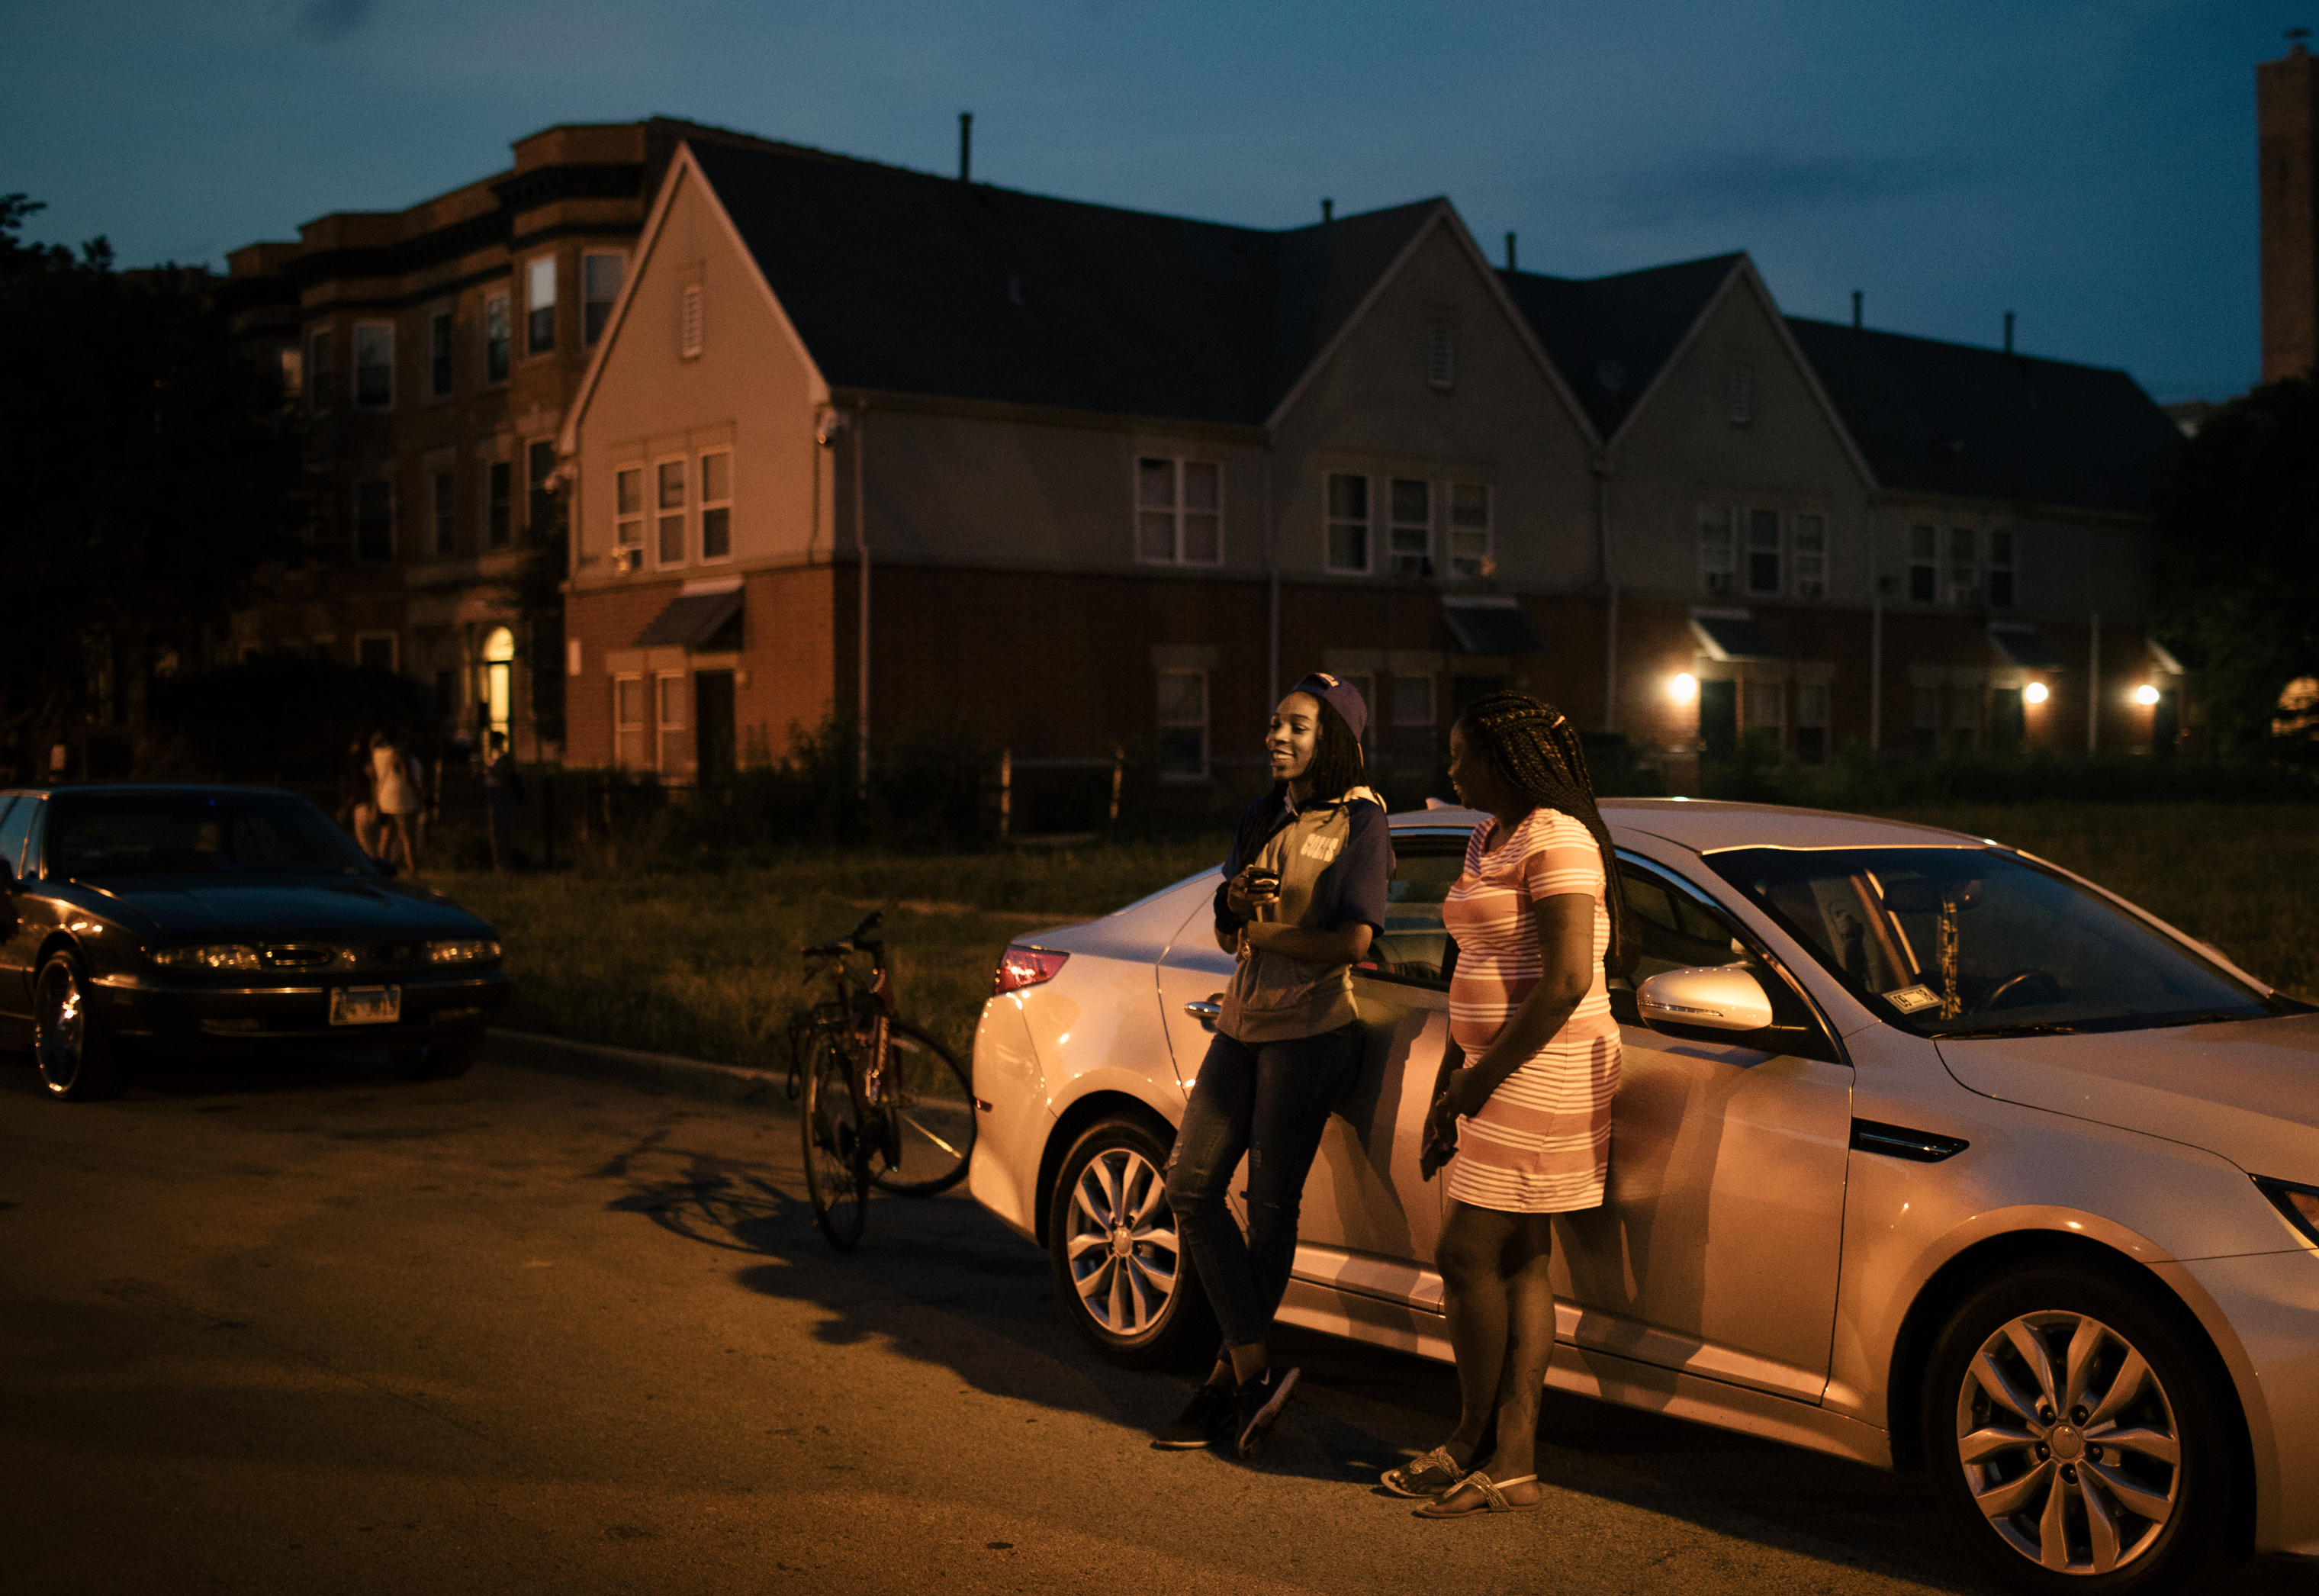 From left, Shawn-Tae, who asked to be identified only by her first name, and Sterling Okafor enjoy an evening together in the Woodlawn neighborhood on Chicago's South Side.